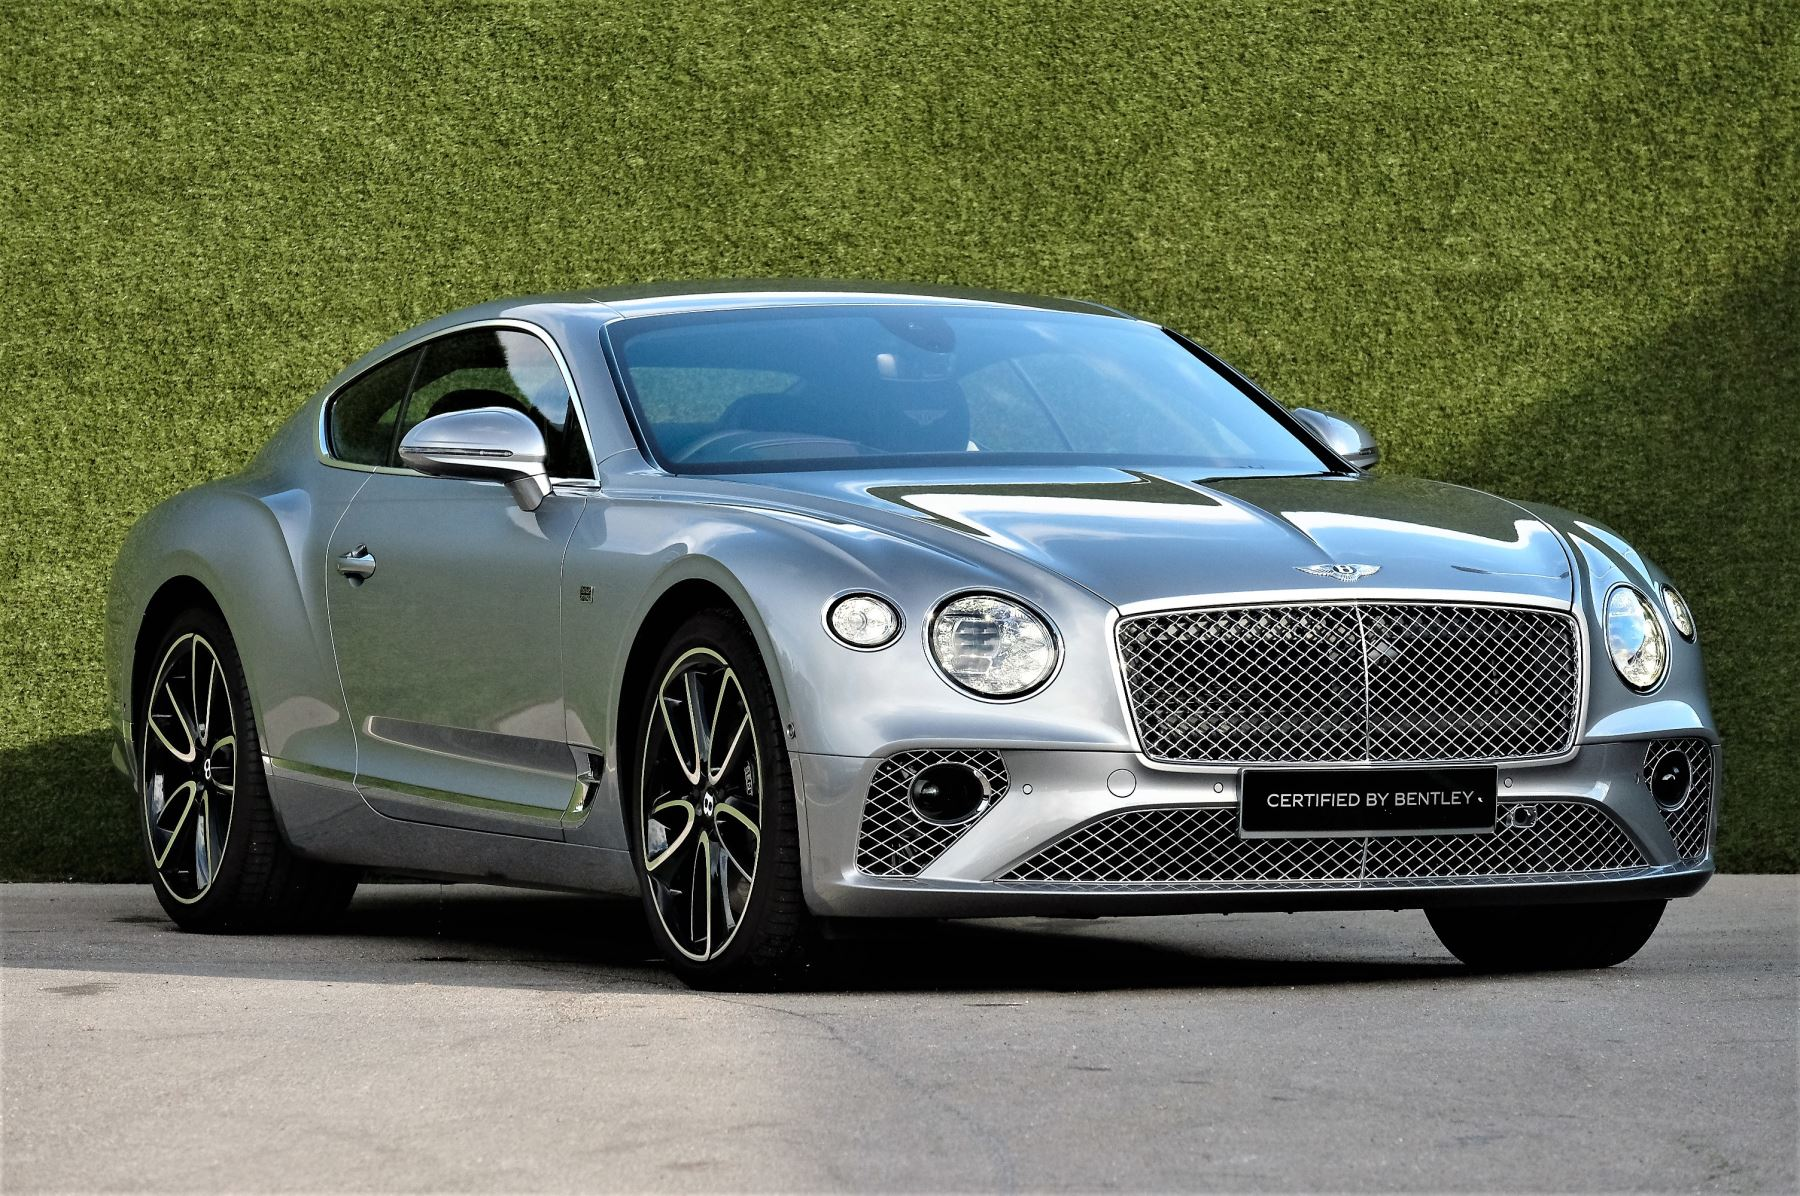 Bentley Continental GT 6.0 W12 First Edition 2dr Auto Automatic Coupe (2020)